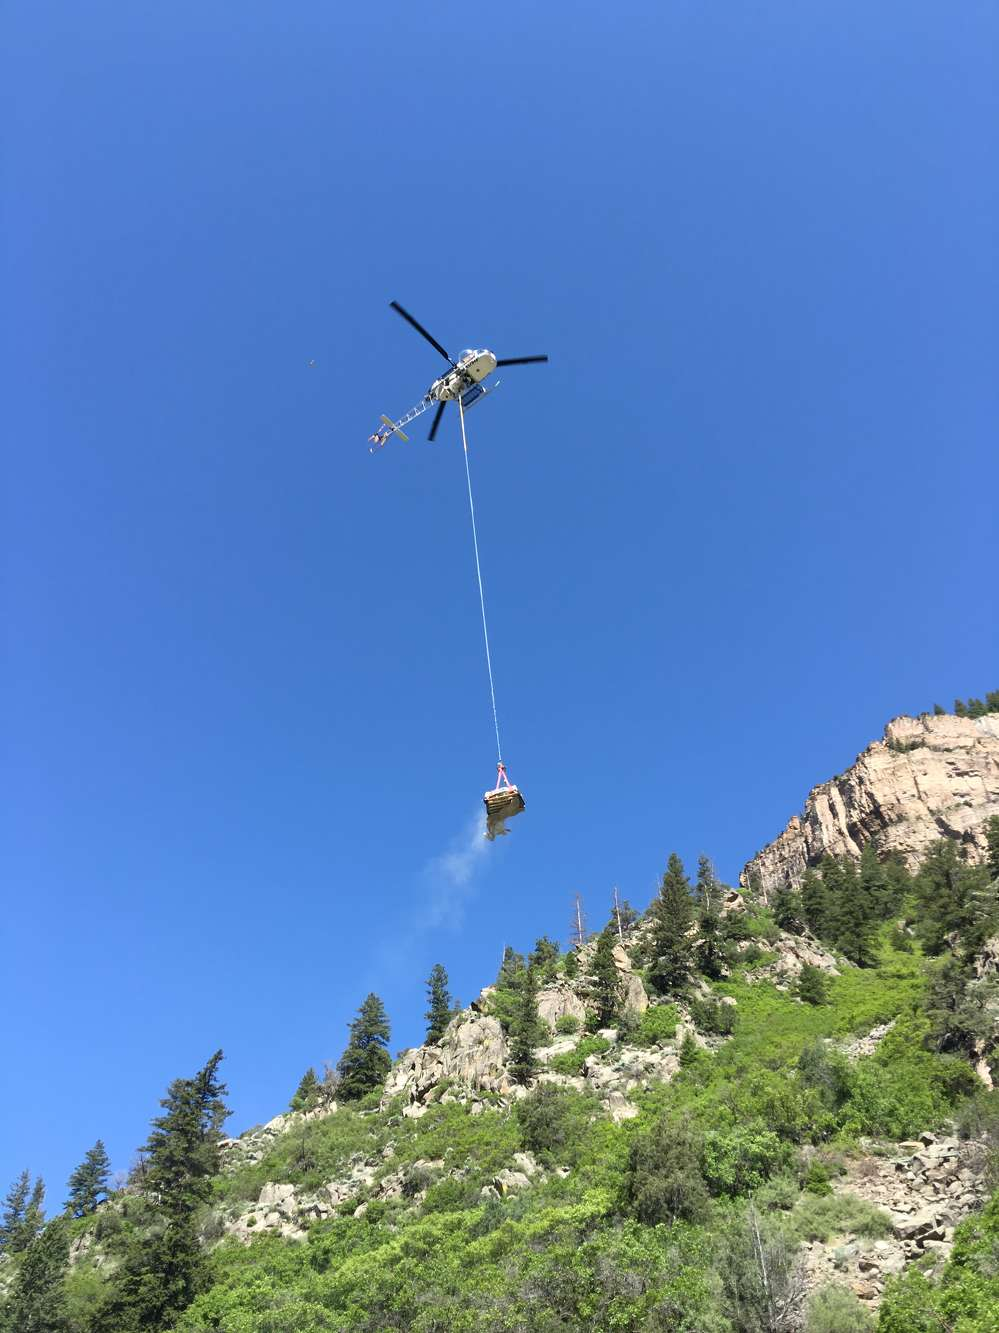 CDOT photo.